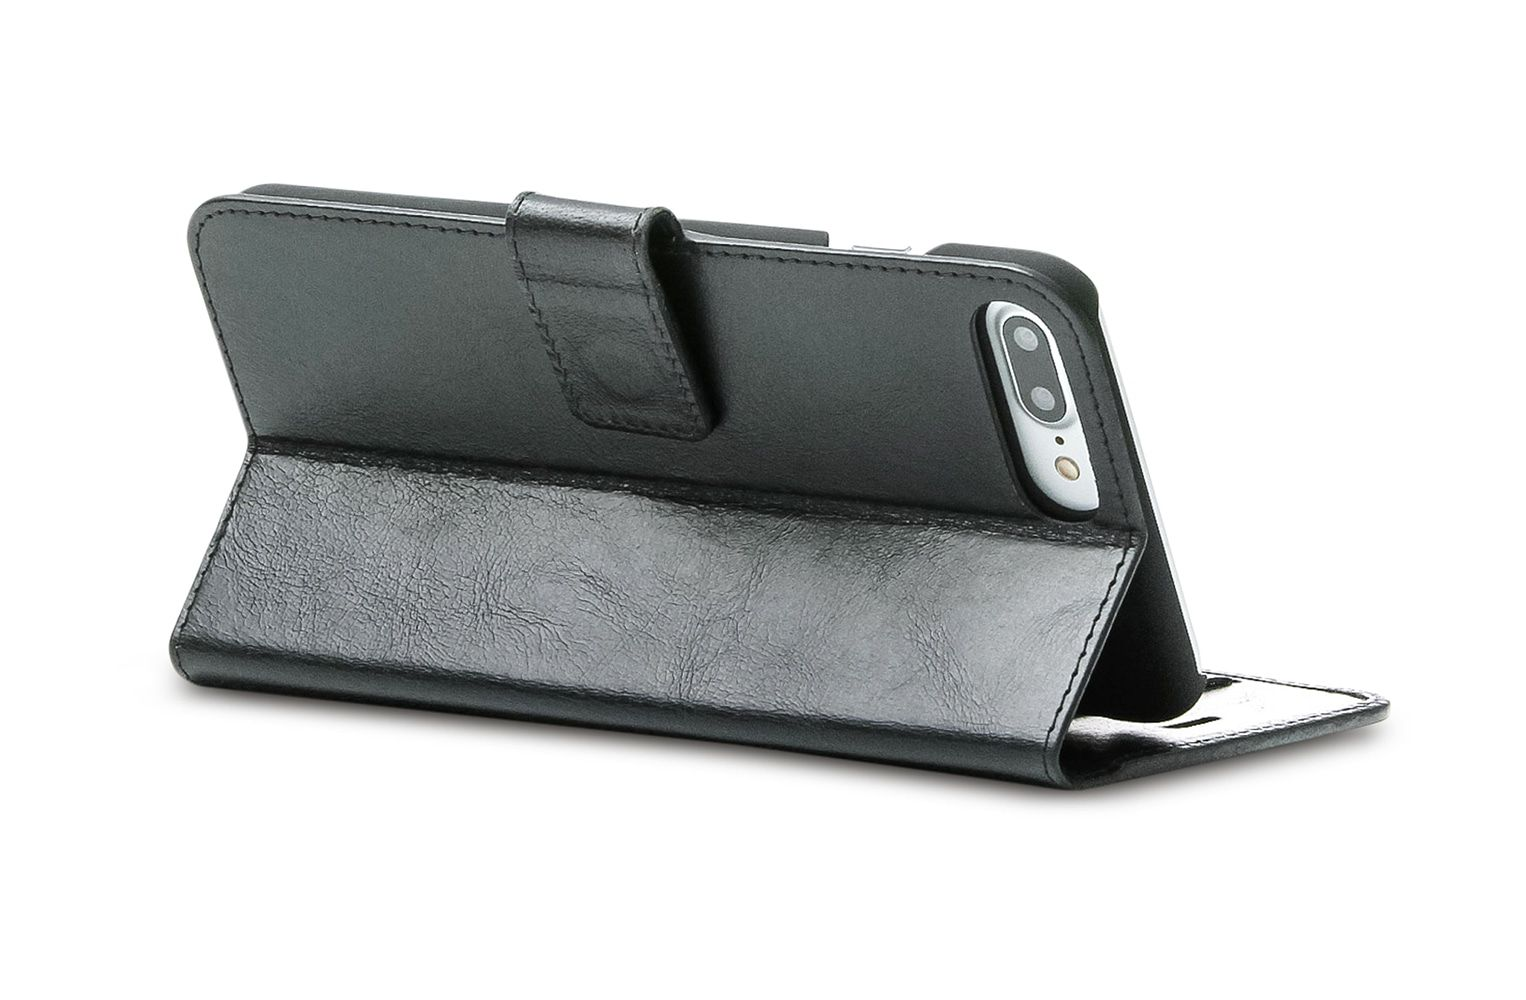 dbramante1928 Copenhagen 2 Leather Wallet iPhone 7 Plus Black